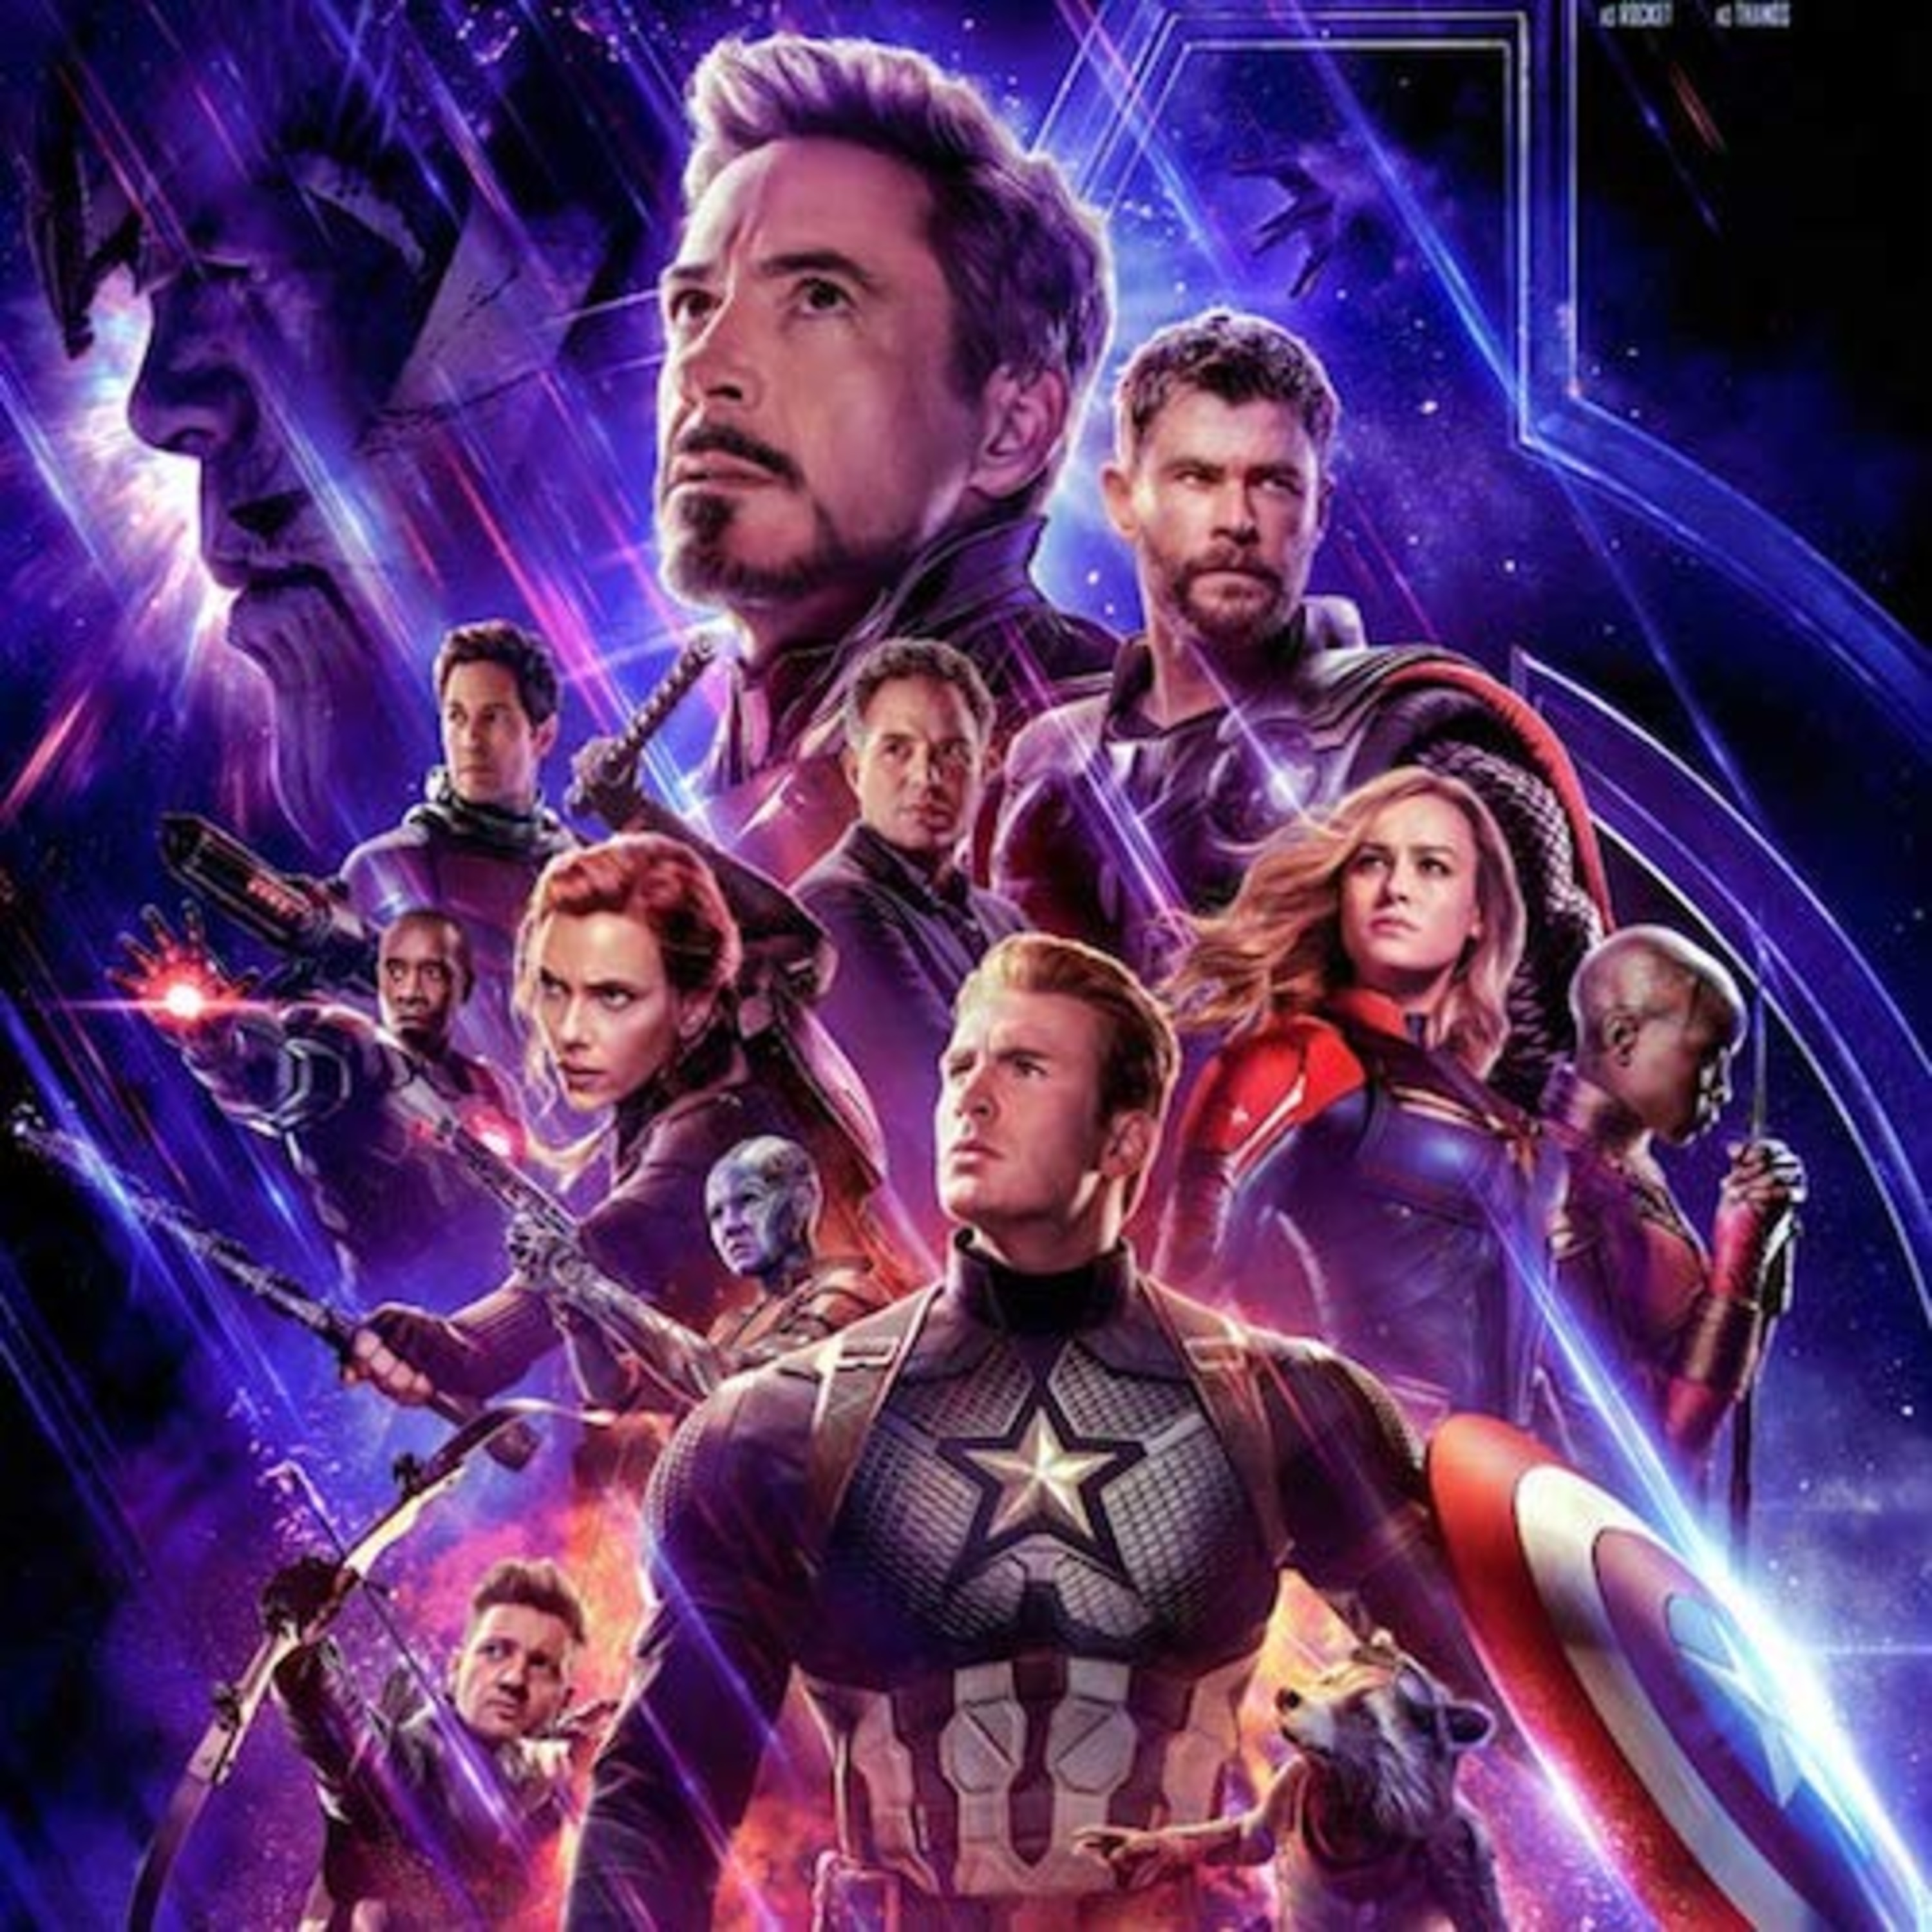 Avengers: Endgame Review - Who's Cutting Onions in the Theater?